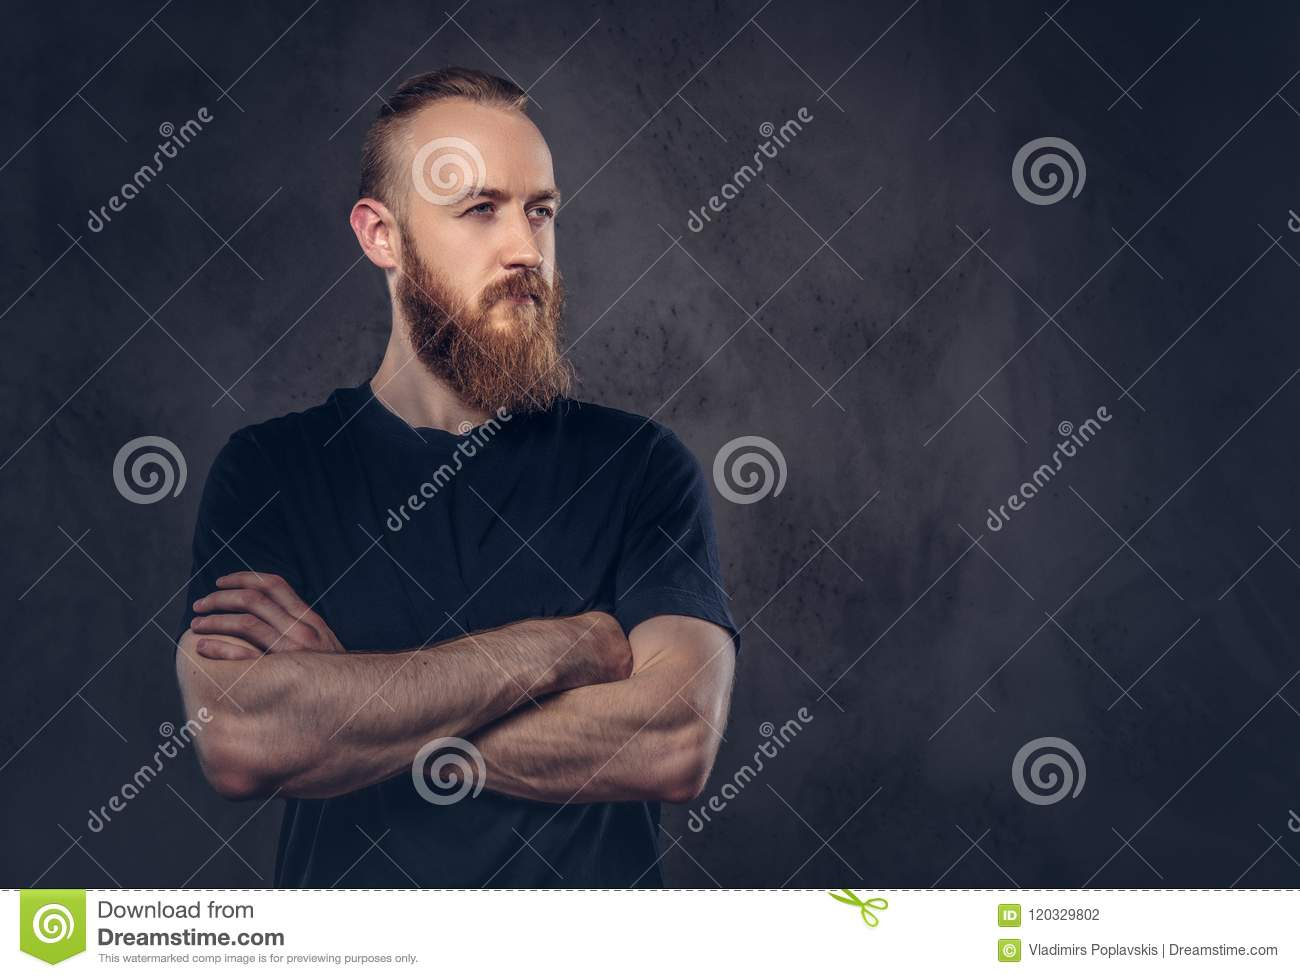 Portrait of a redhead bearded man dressed in a black t-shirt standing with crossed arms. Isolated on a dark textured